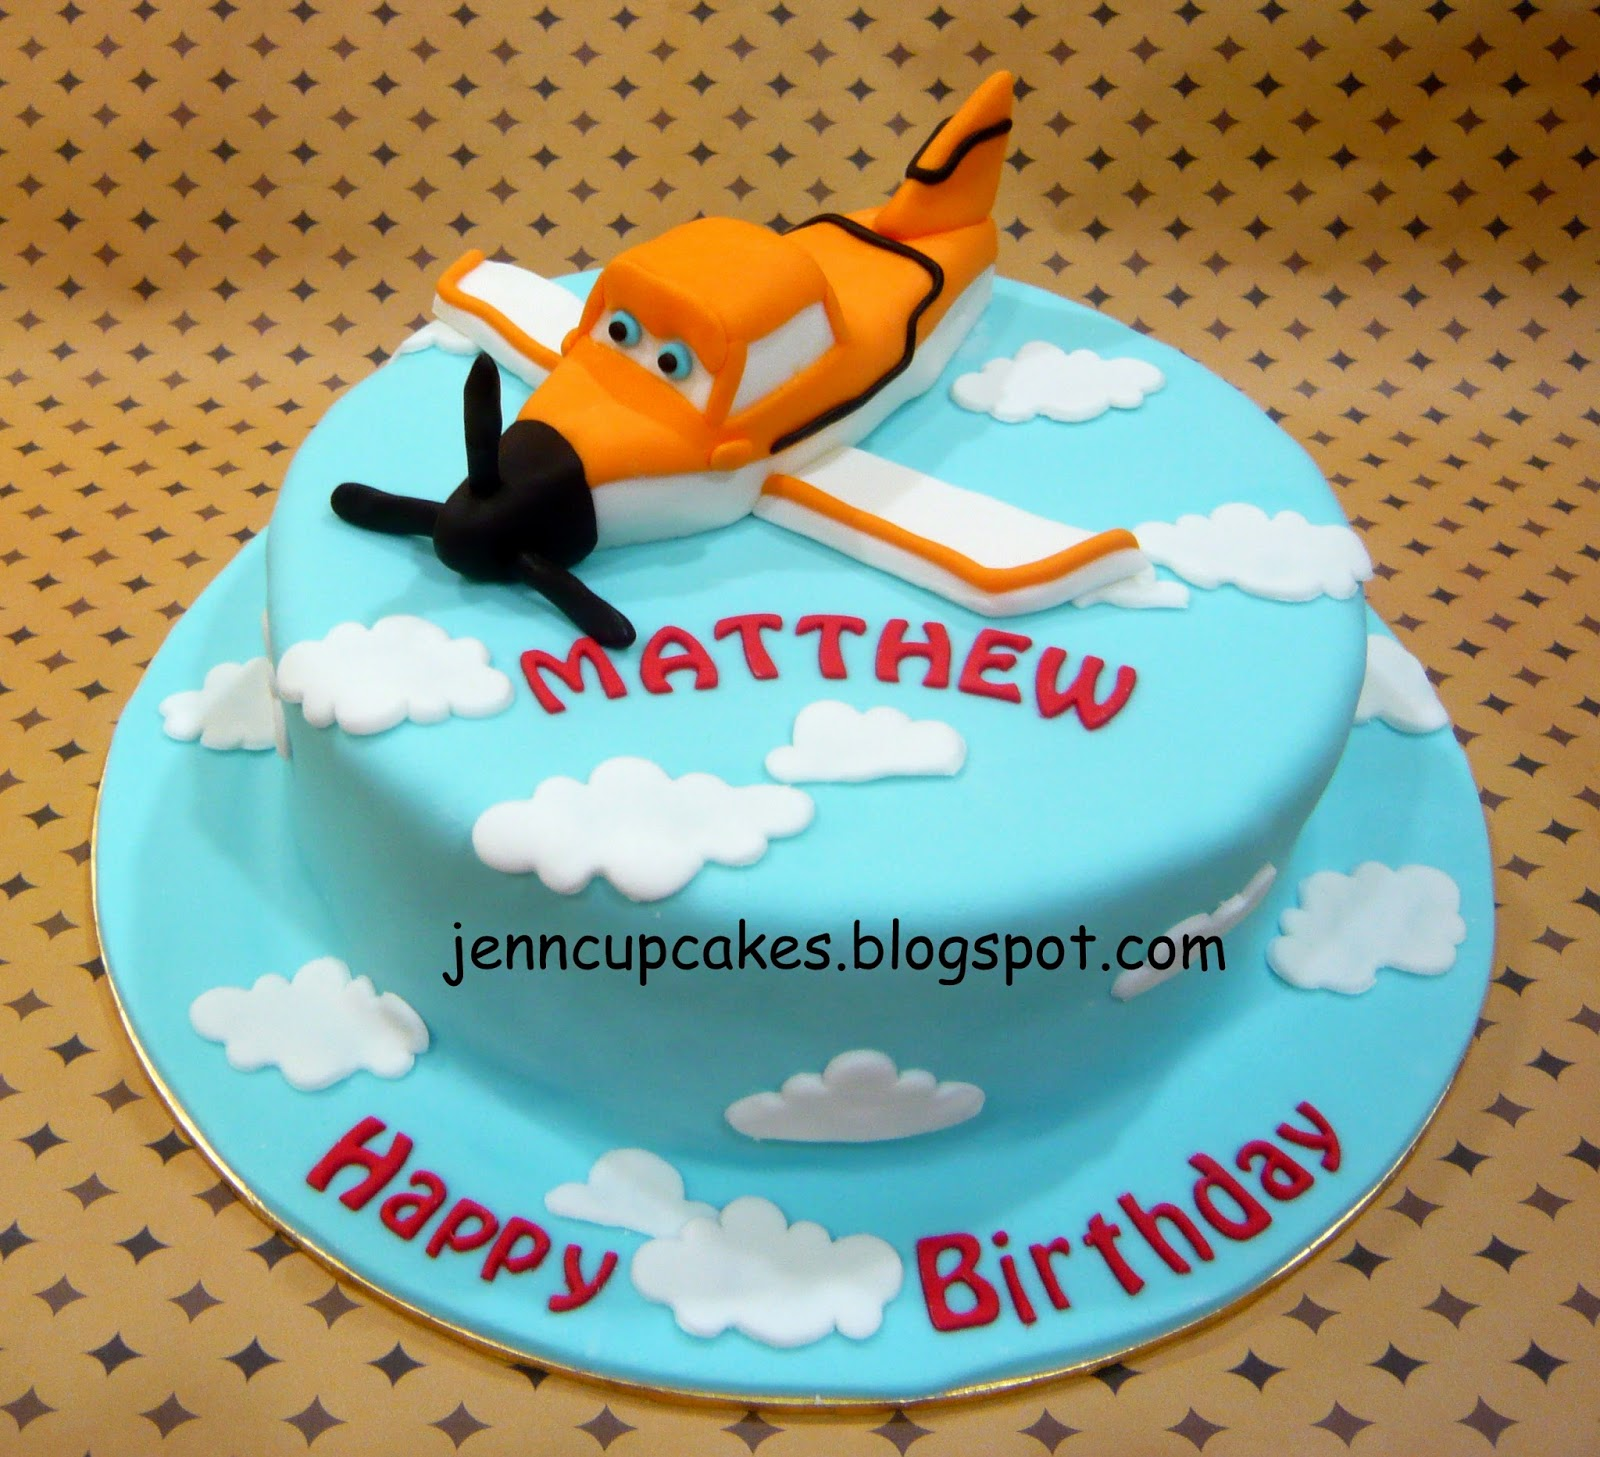 Disney Plane Cake Images : Jenn Cupcakes & Muffins: Disney Planes (Dusty) Cake